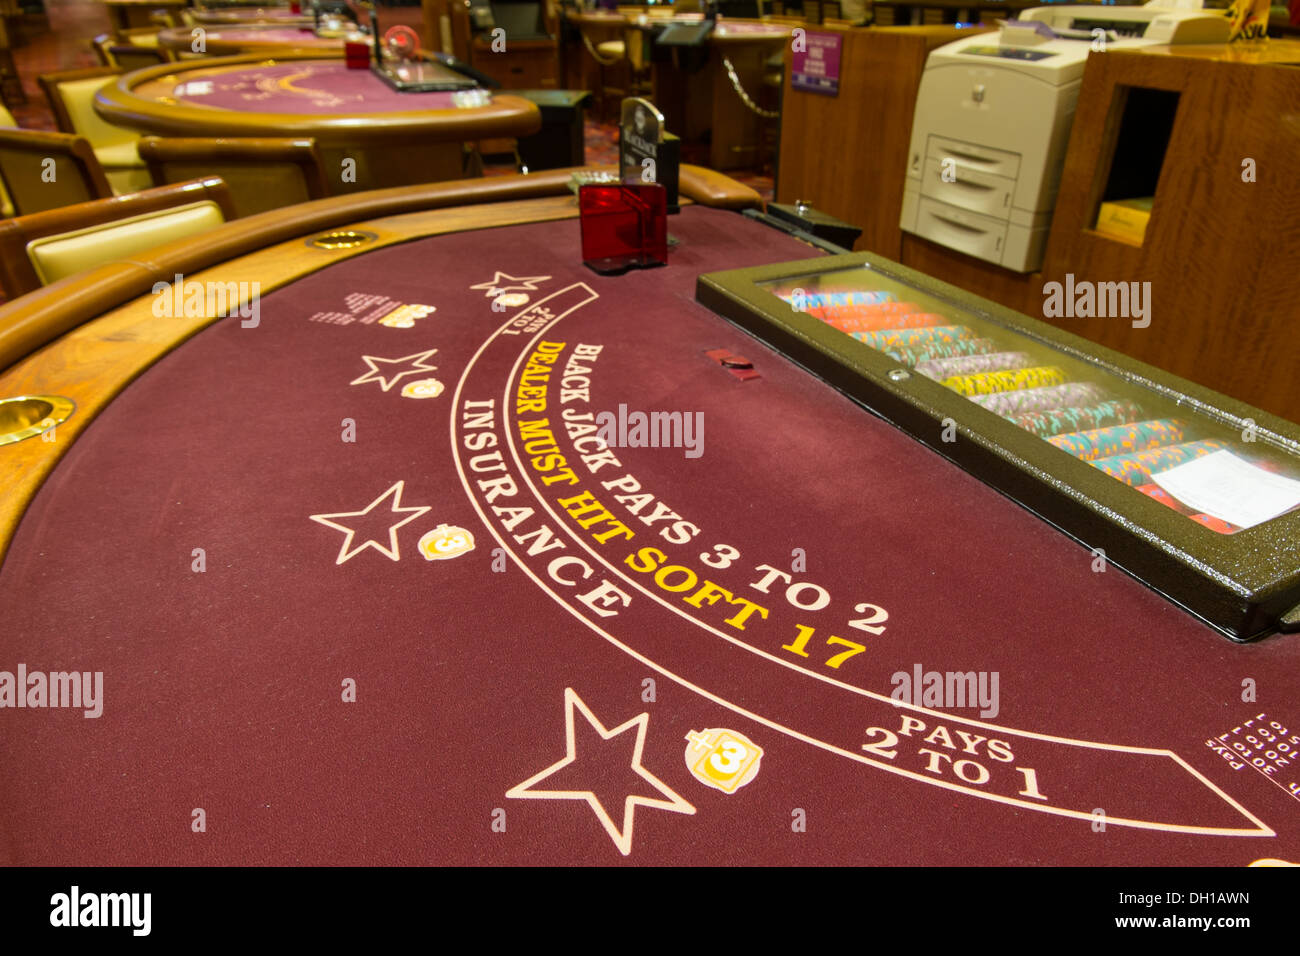 Blackjack Gambling Table - Casino Interior, no people. - Stock Image